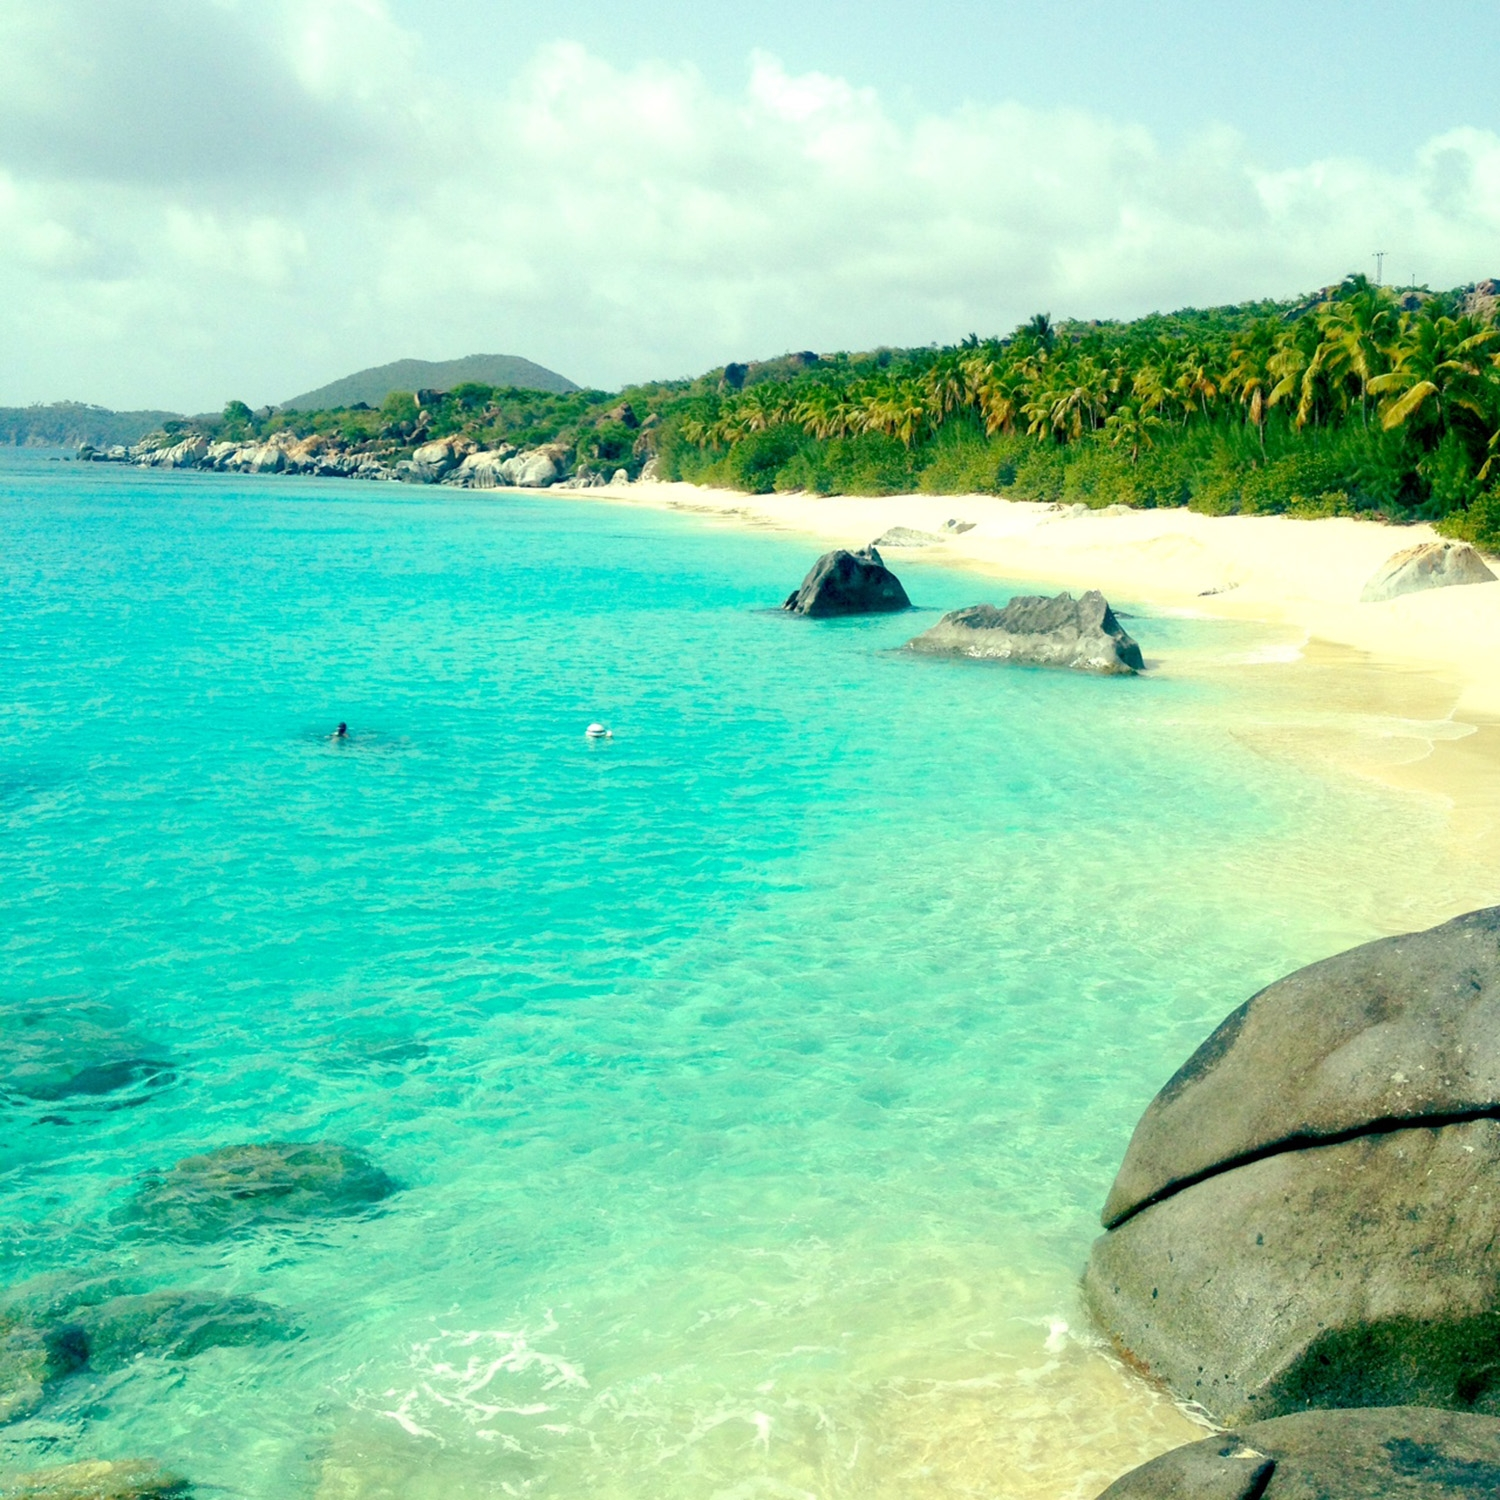 The small sandy beach is met by the dense forest on one side and crystal clear sea water on the other